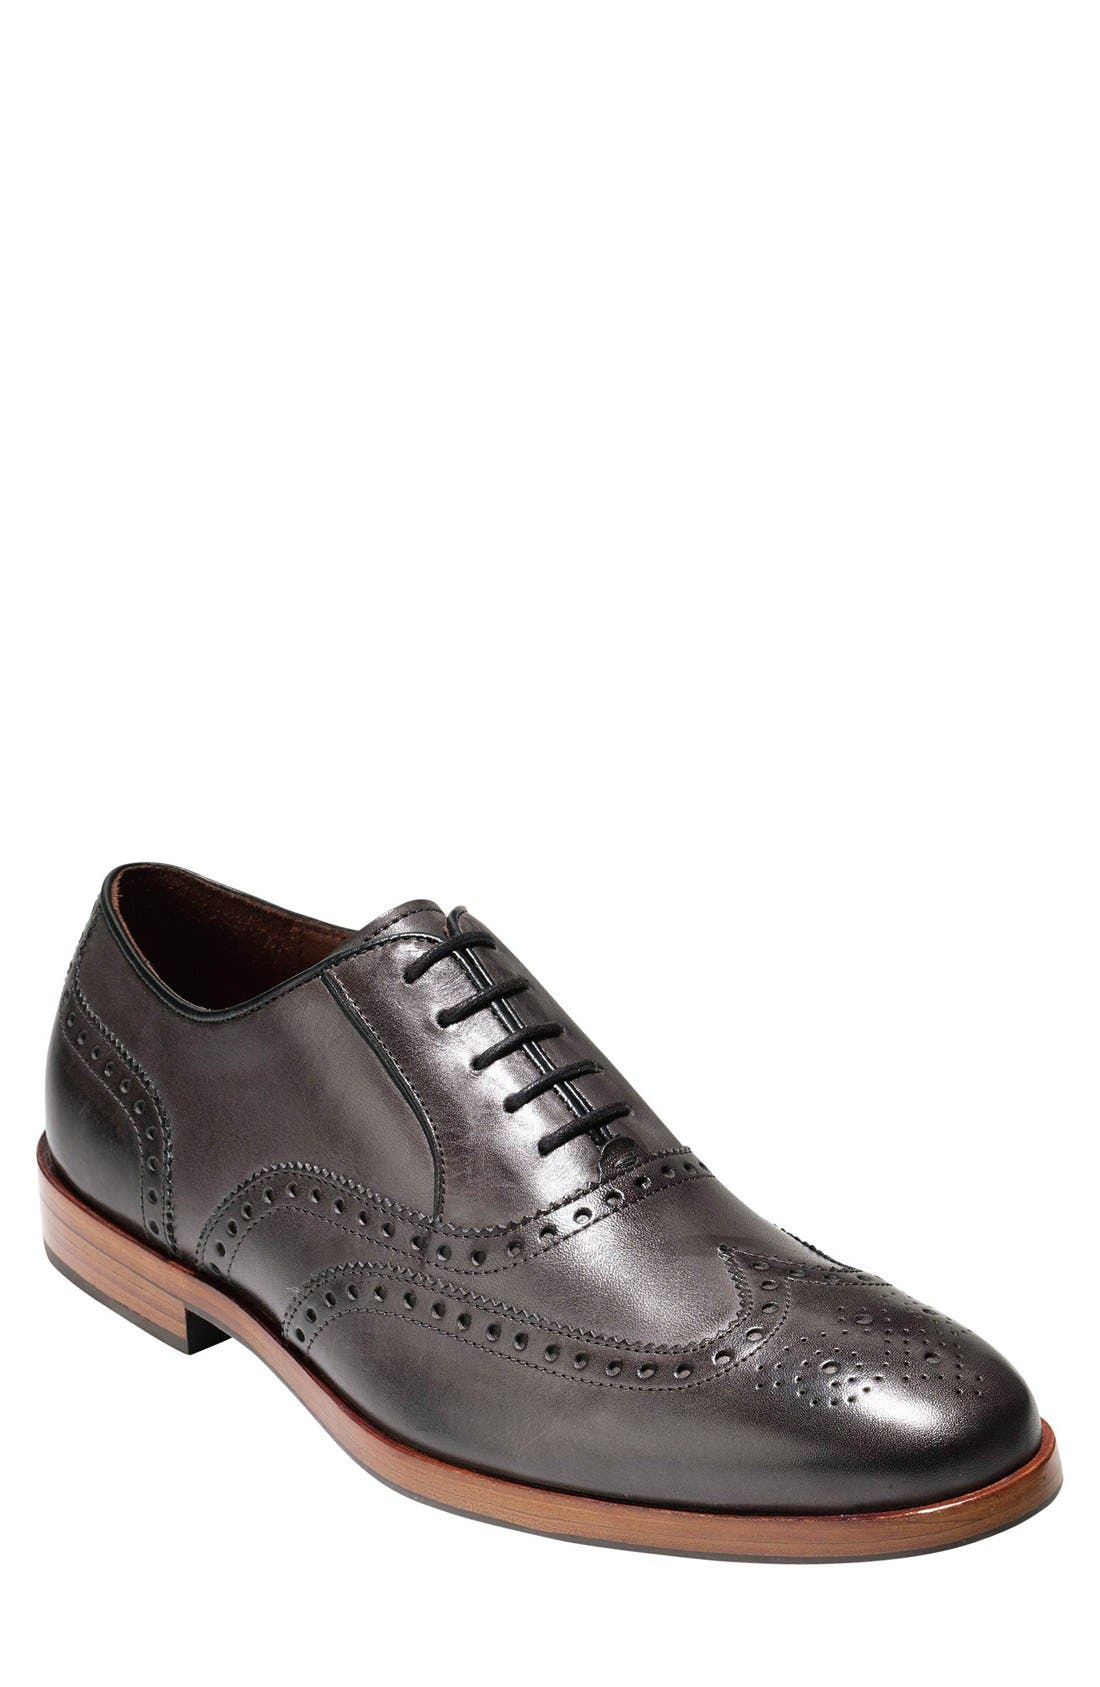 Hamilton Wingtip,                             Main thumbnail 1, color,                             Dark Grey